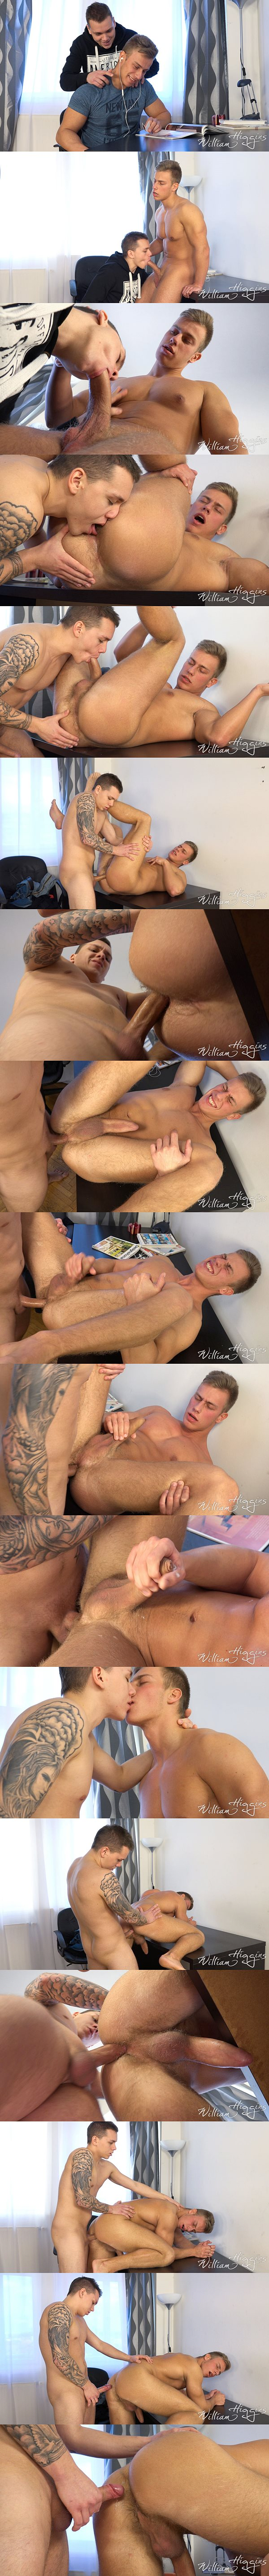 Marion Anel barebacks hot muscle jock Bradley Cook at Williamhiggins 02